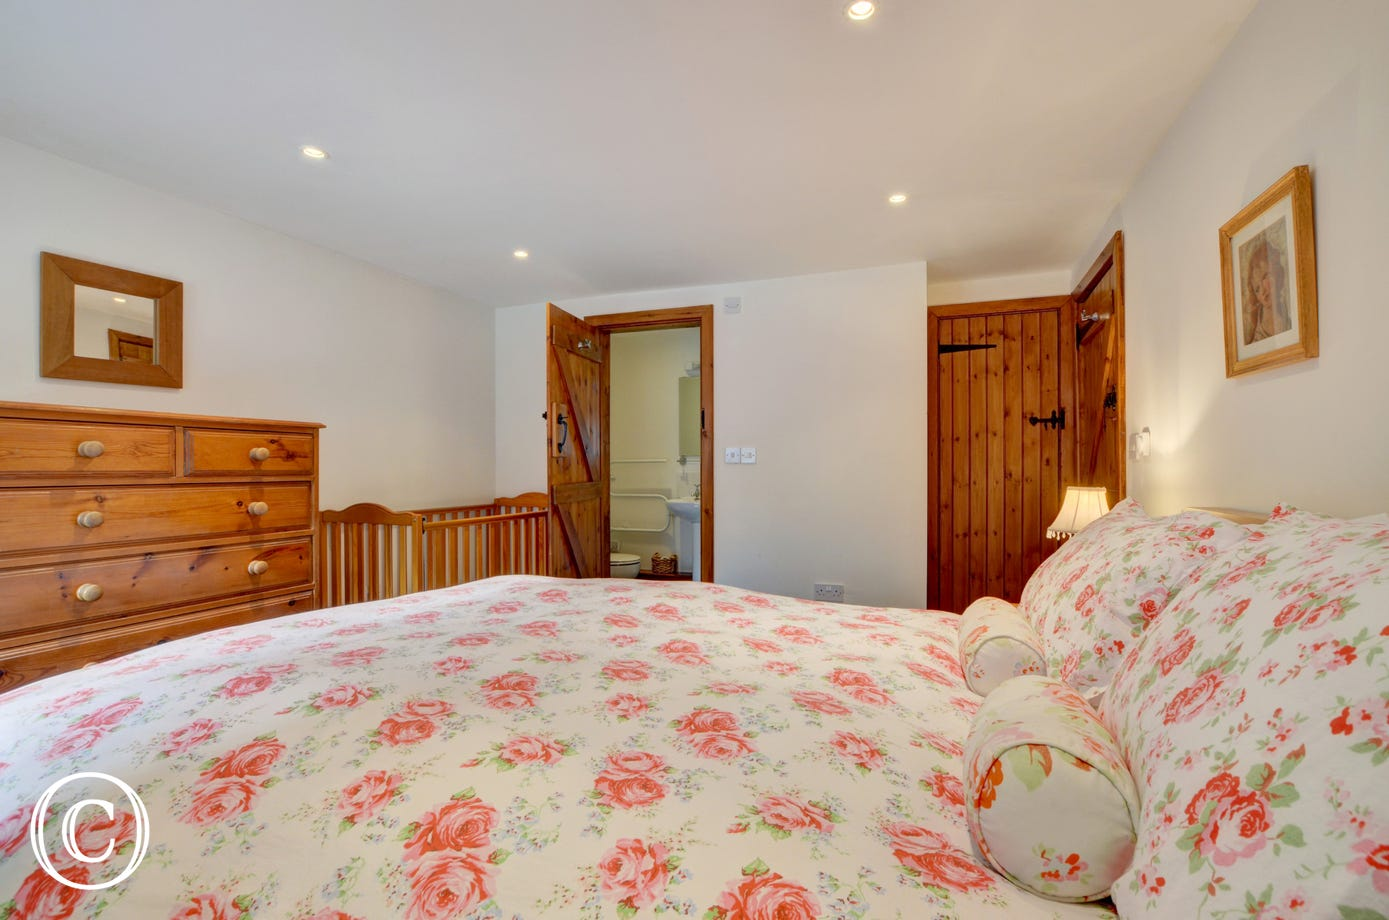 Tastefully decorated master bedroom with kingsize bed and ensuite bathroom